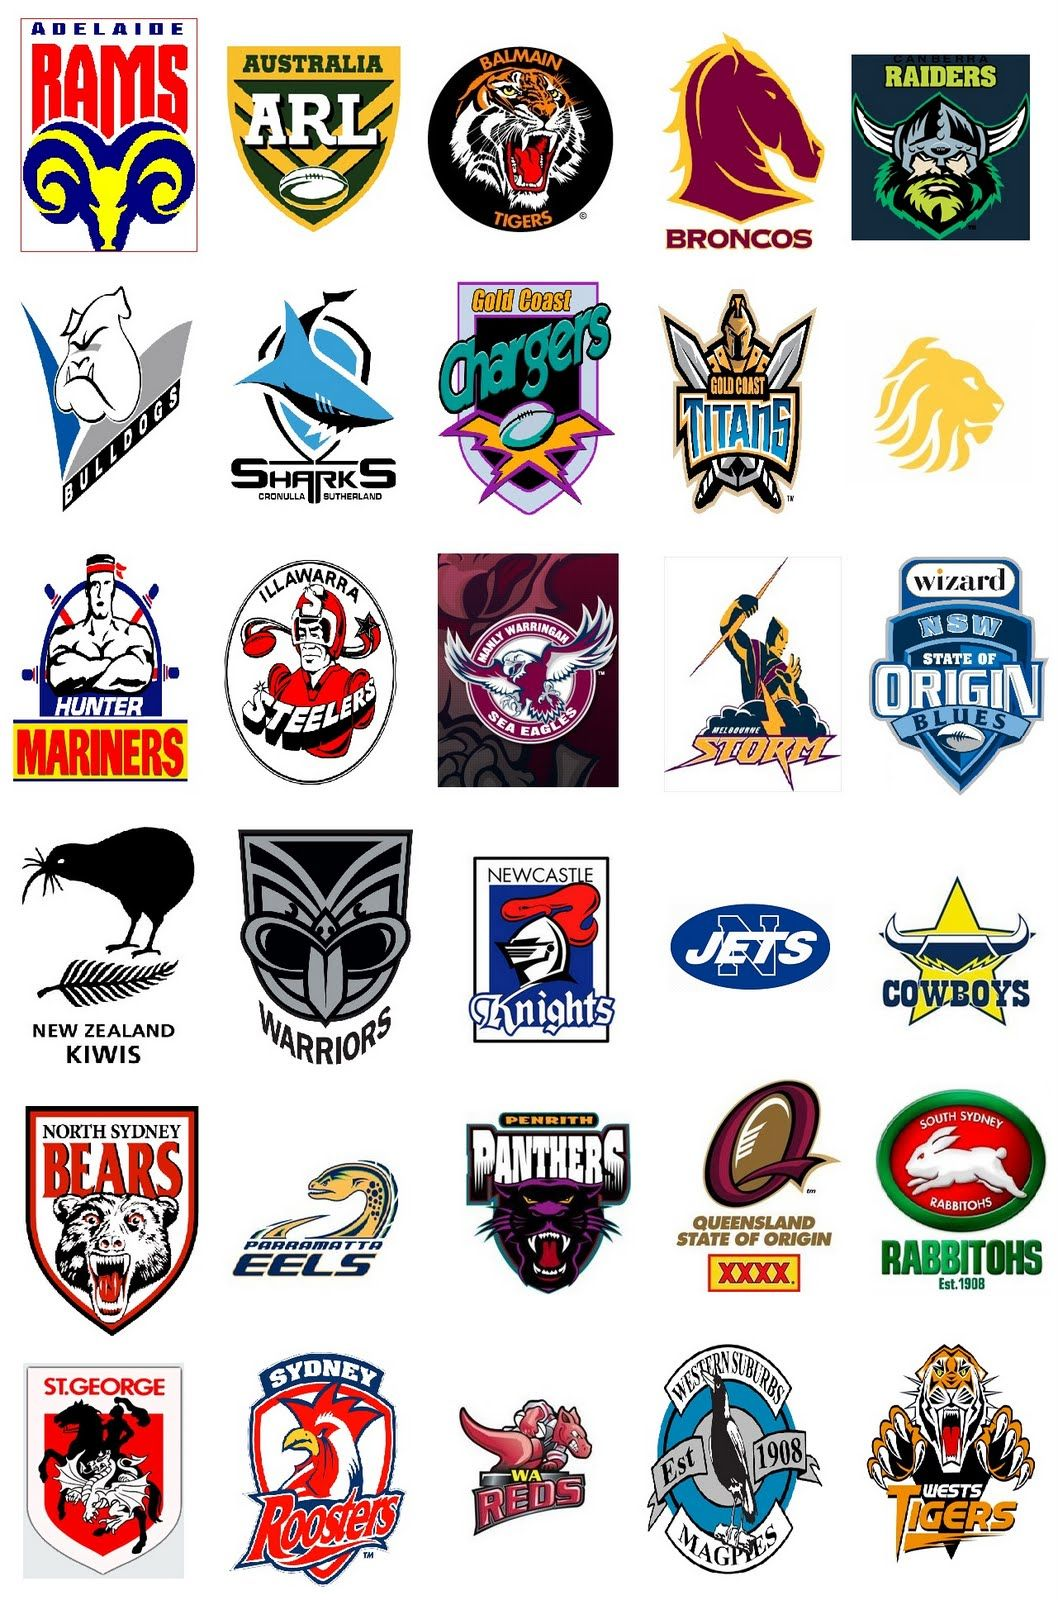 rugby logos : Rugby Team Logo Colouring Pages Page 3 : Rugby Logos ...